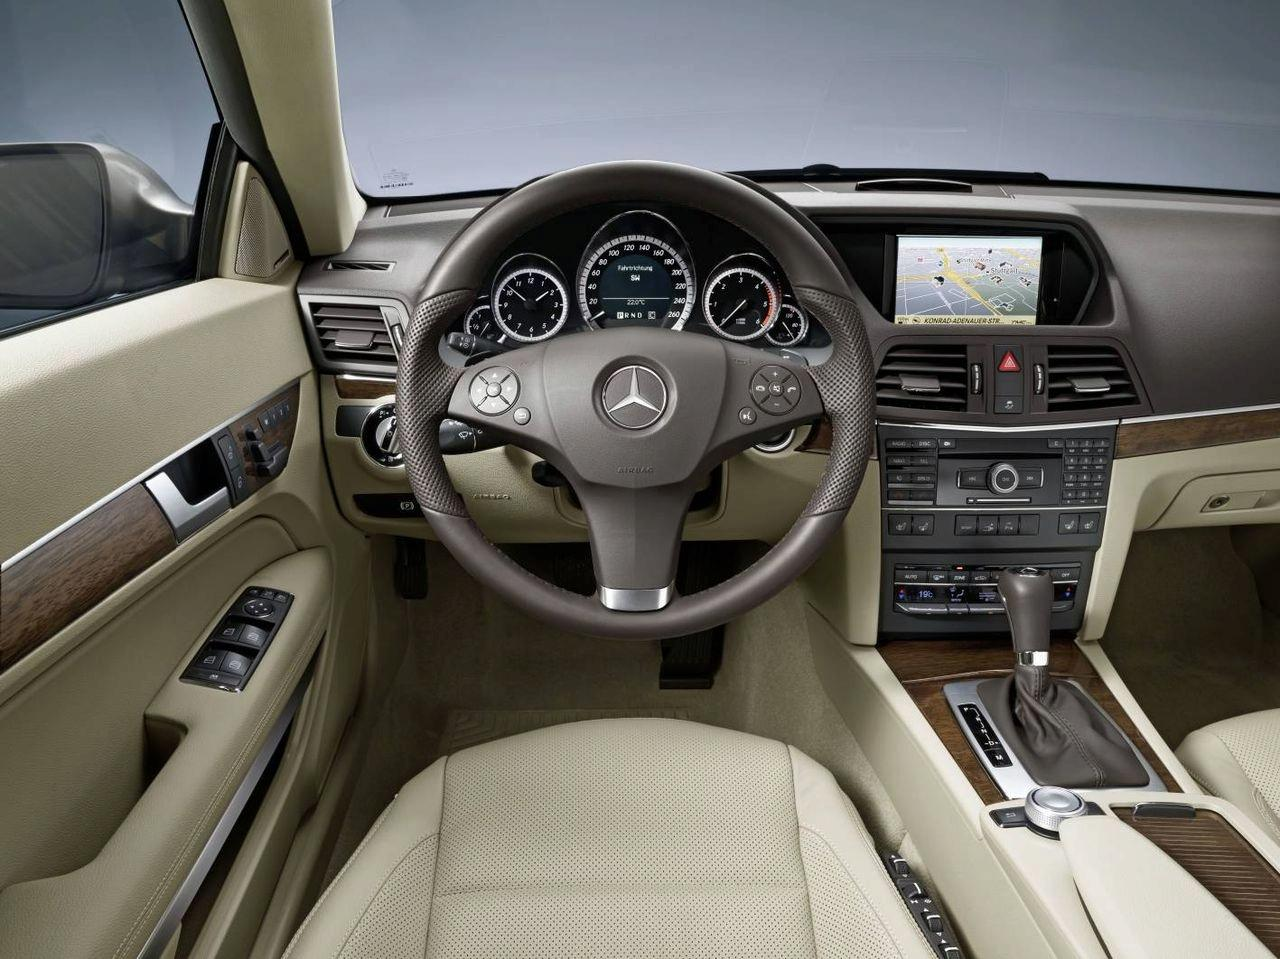 New 2010 Mercedes Benz E Class Coupe Revealed Ahead Of Geneva Debut It S Your Auto World